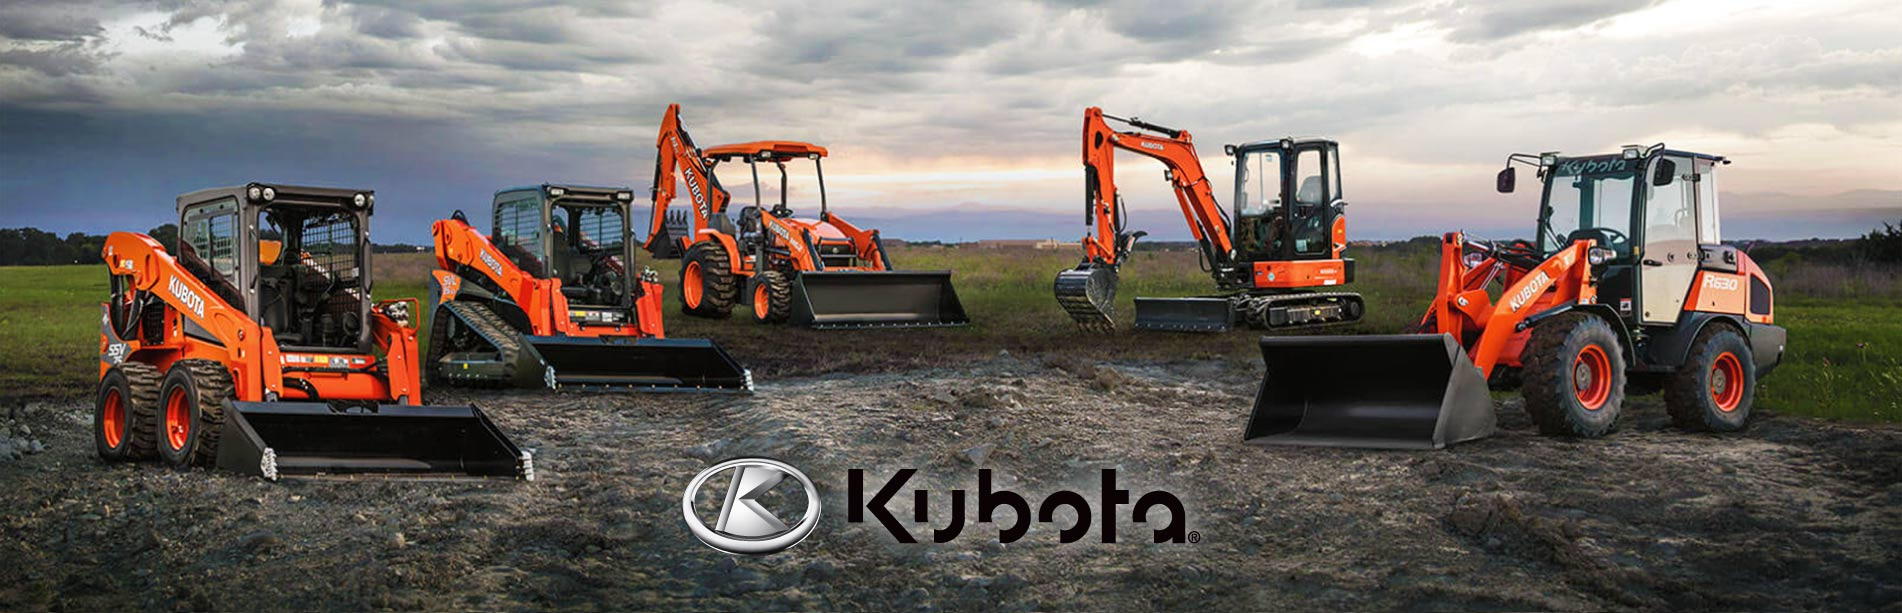 Kubota Dealer Norfolk Power Equipment banner image